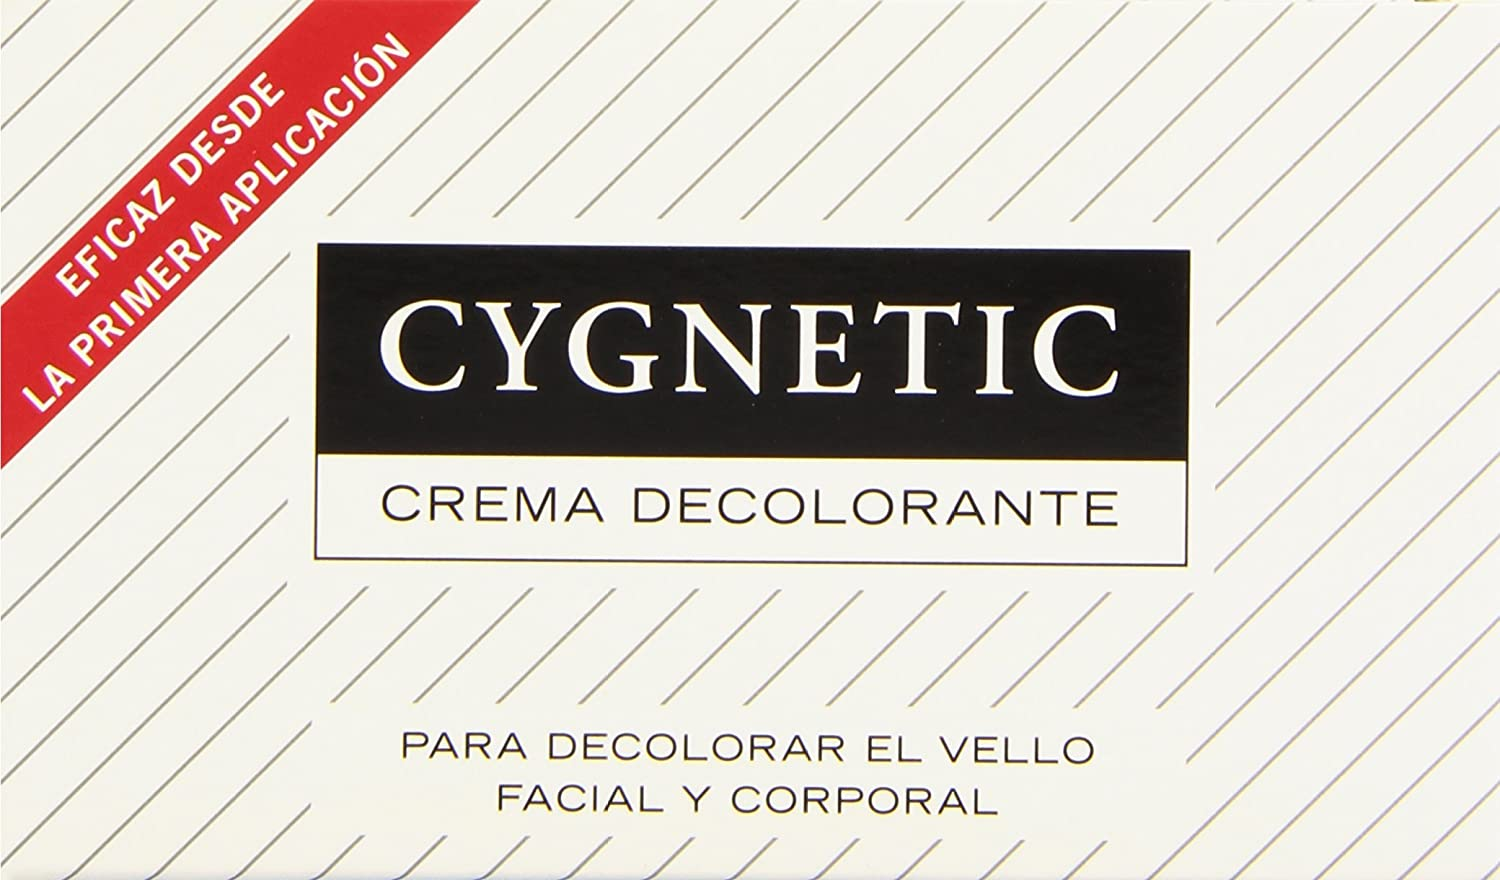 Cygnetic, Decolorante para pelo - 2 de 50 ml. (Total 100 ml.): Amazon.es: Belleza